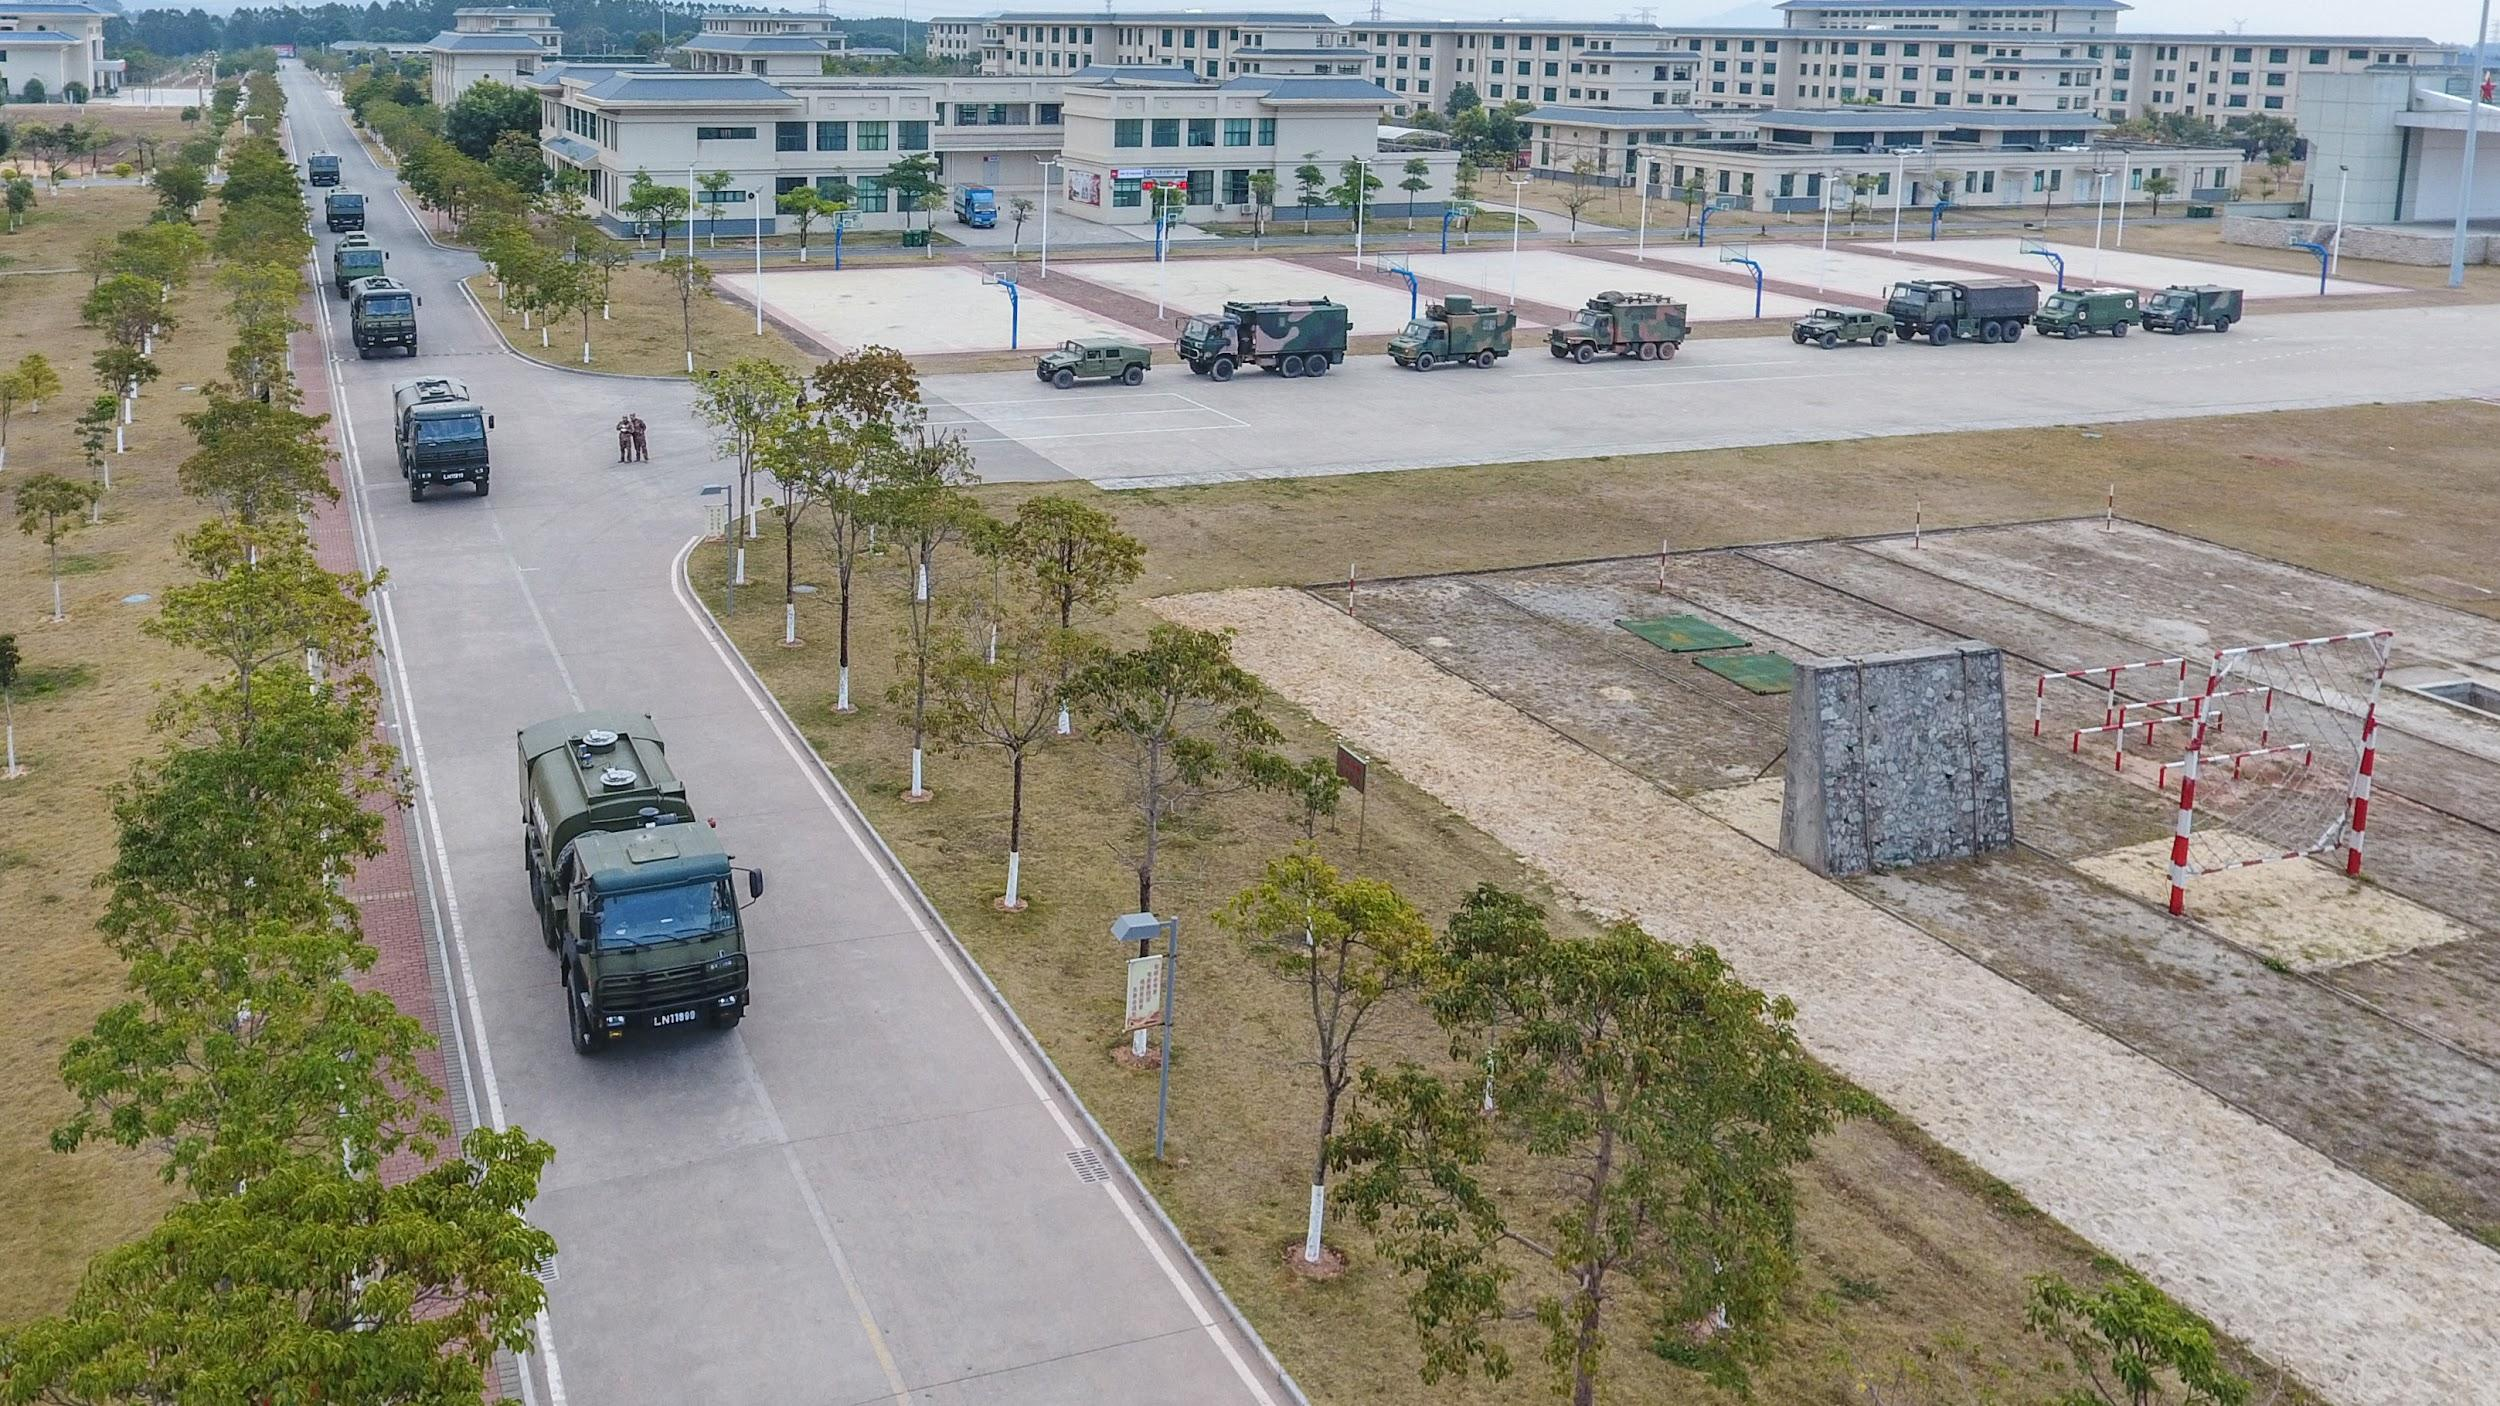 74th Group Army, Southern Theater Command (chinamil.com.cn)